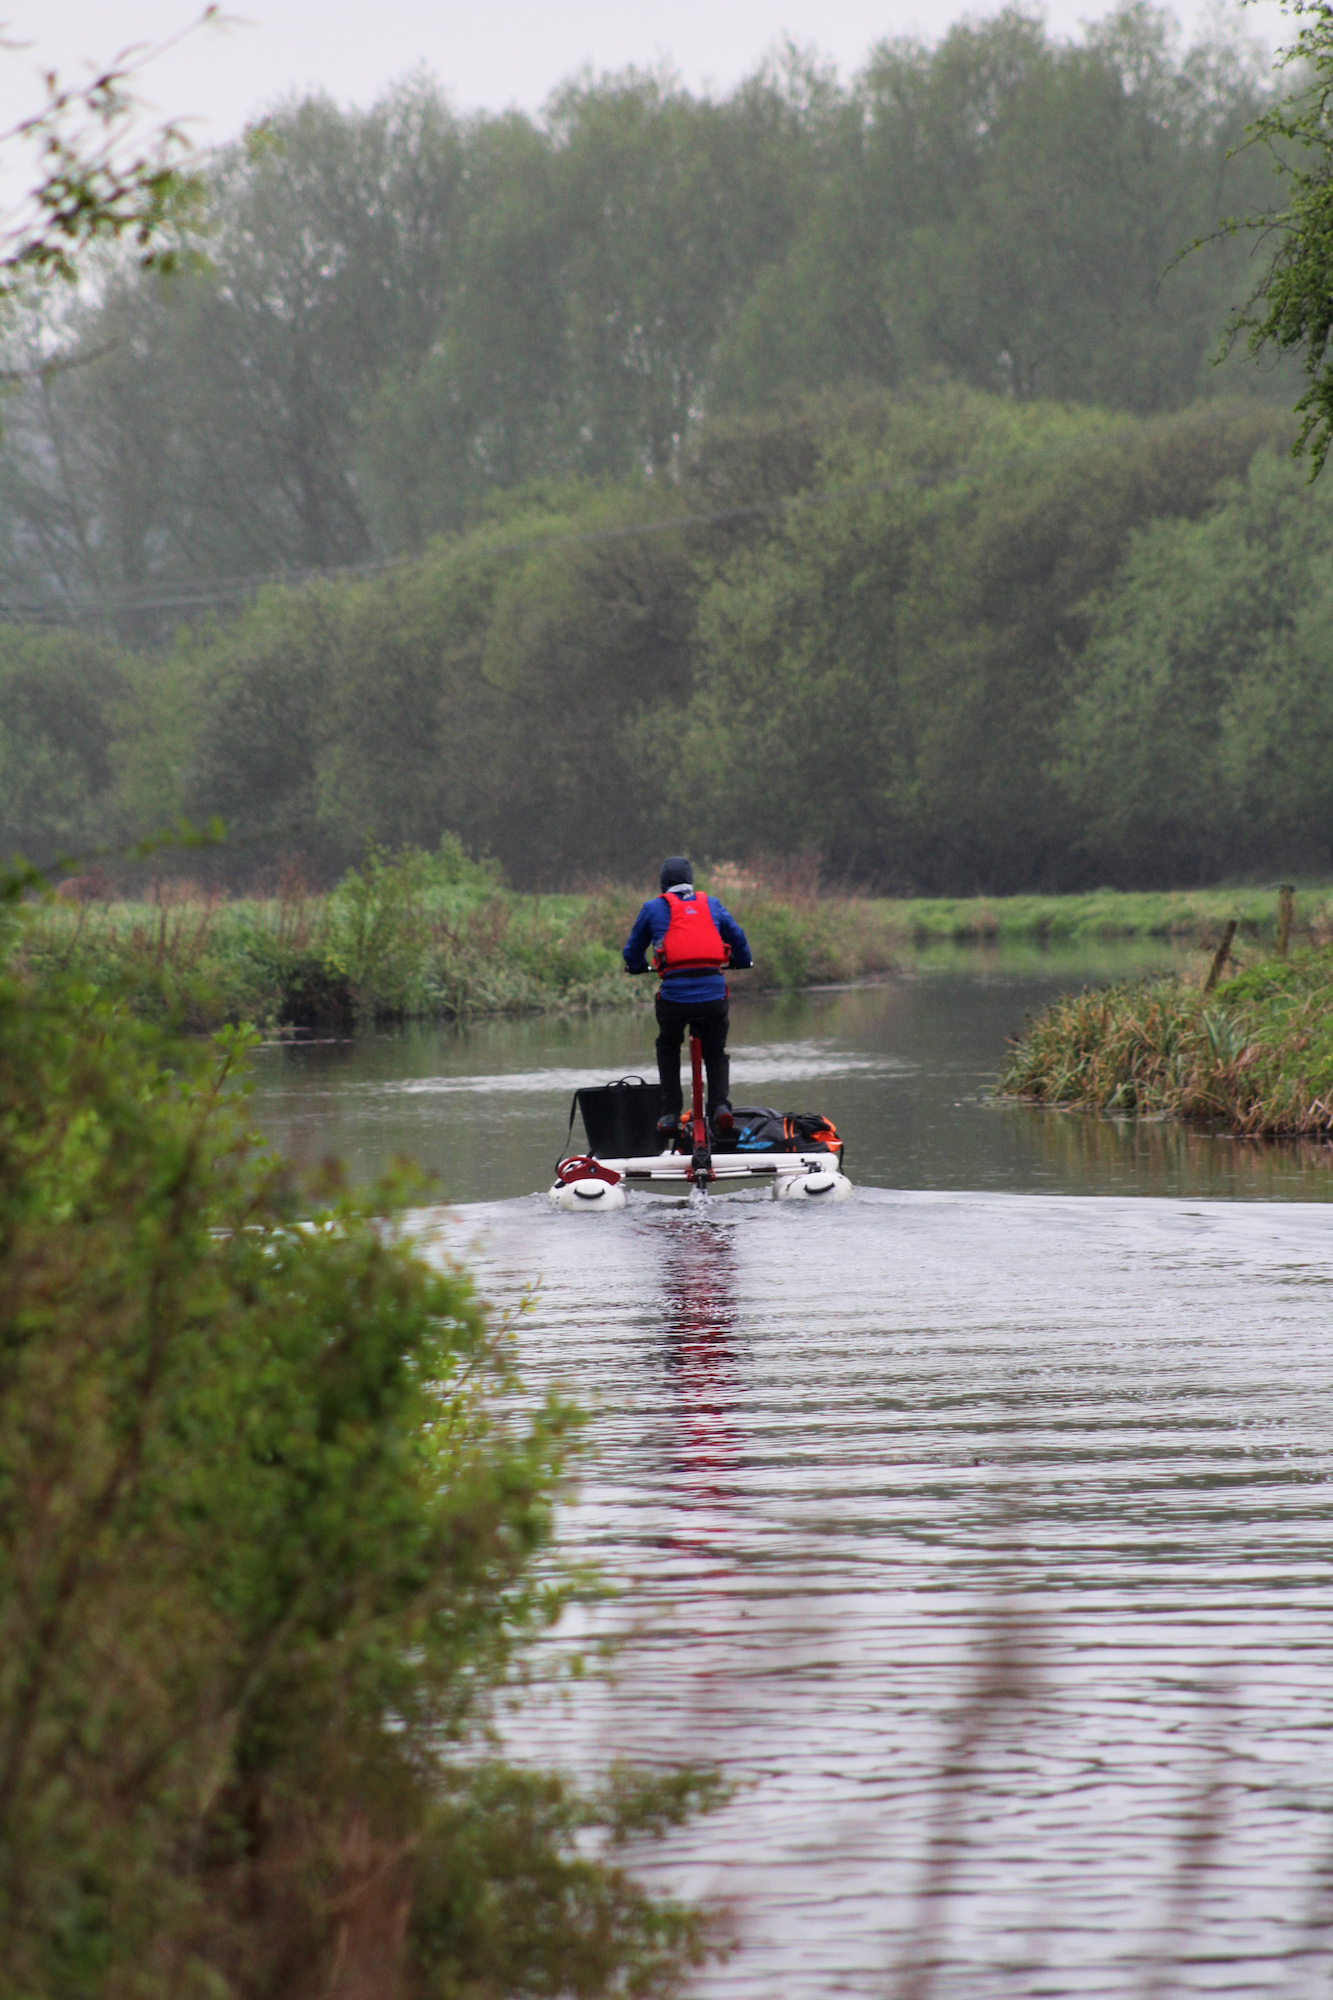 Ed Gwynne takes on the River Stort on Day One of the Waterbike Collective. Image by Tanya Noble